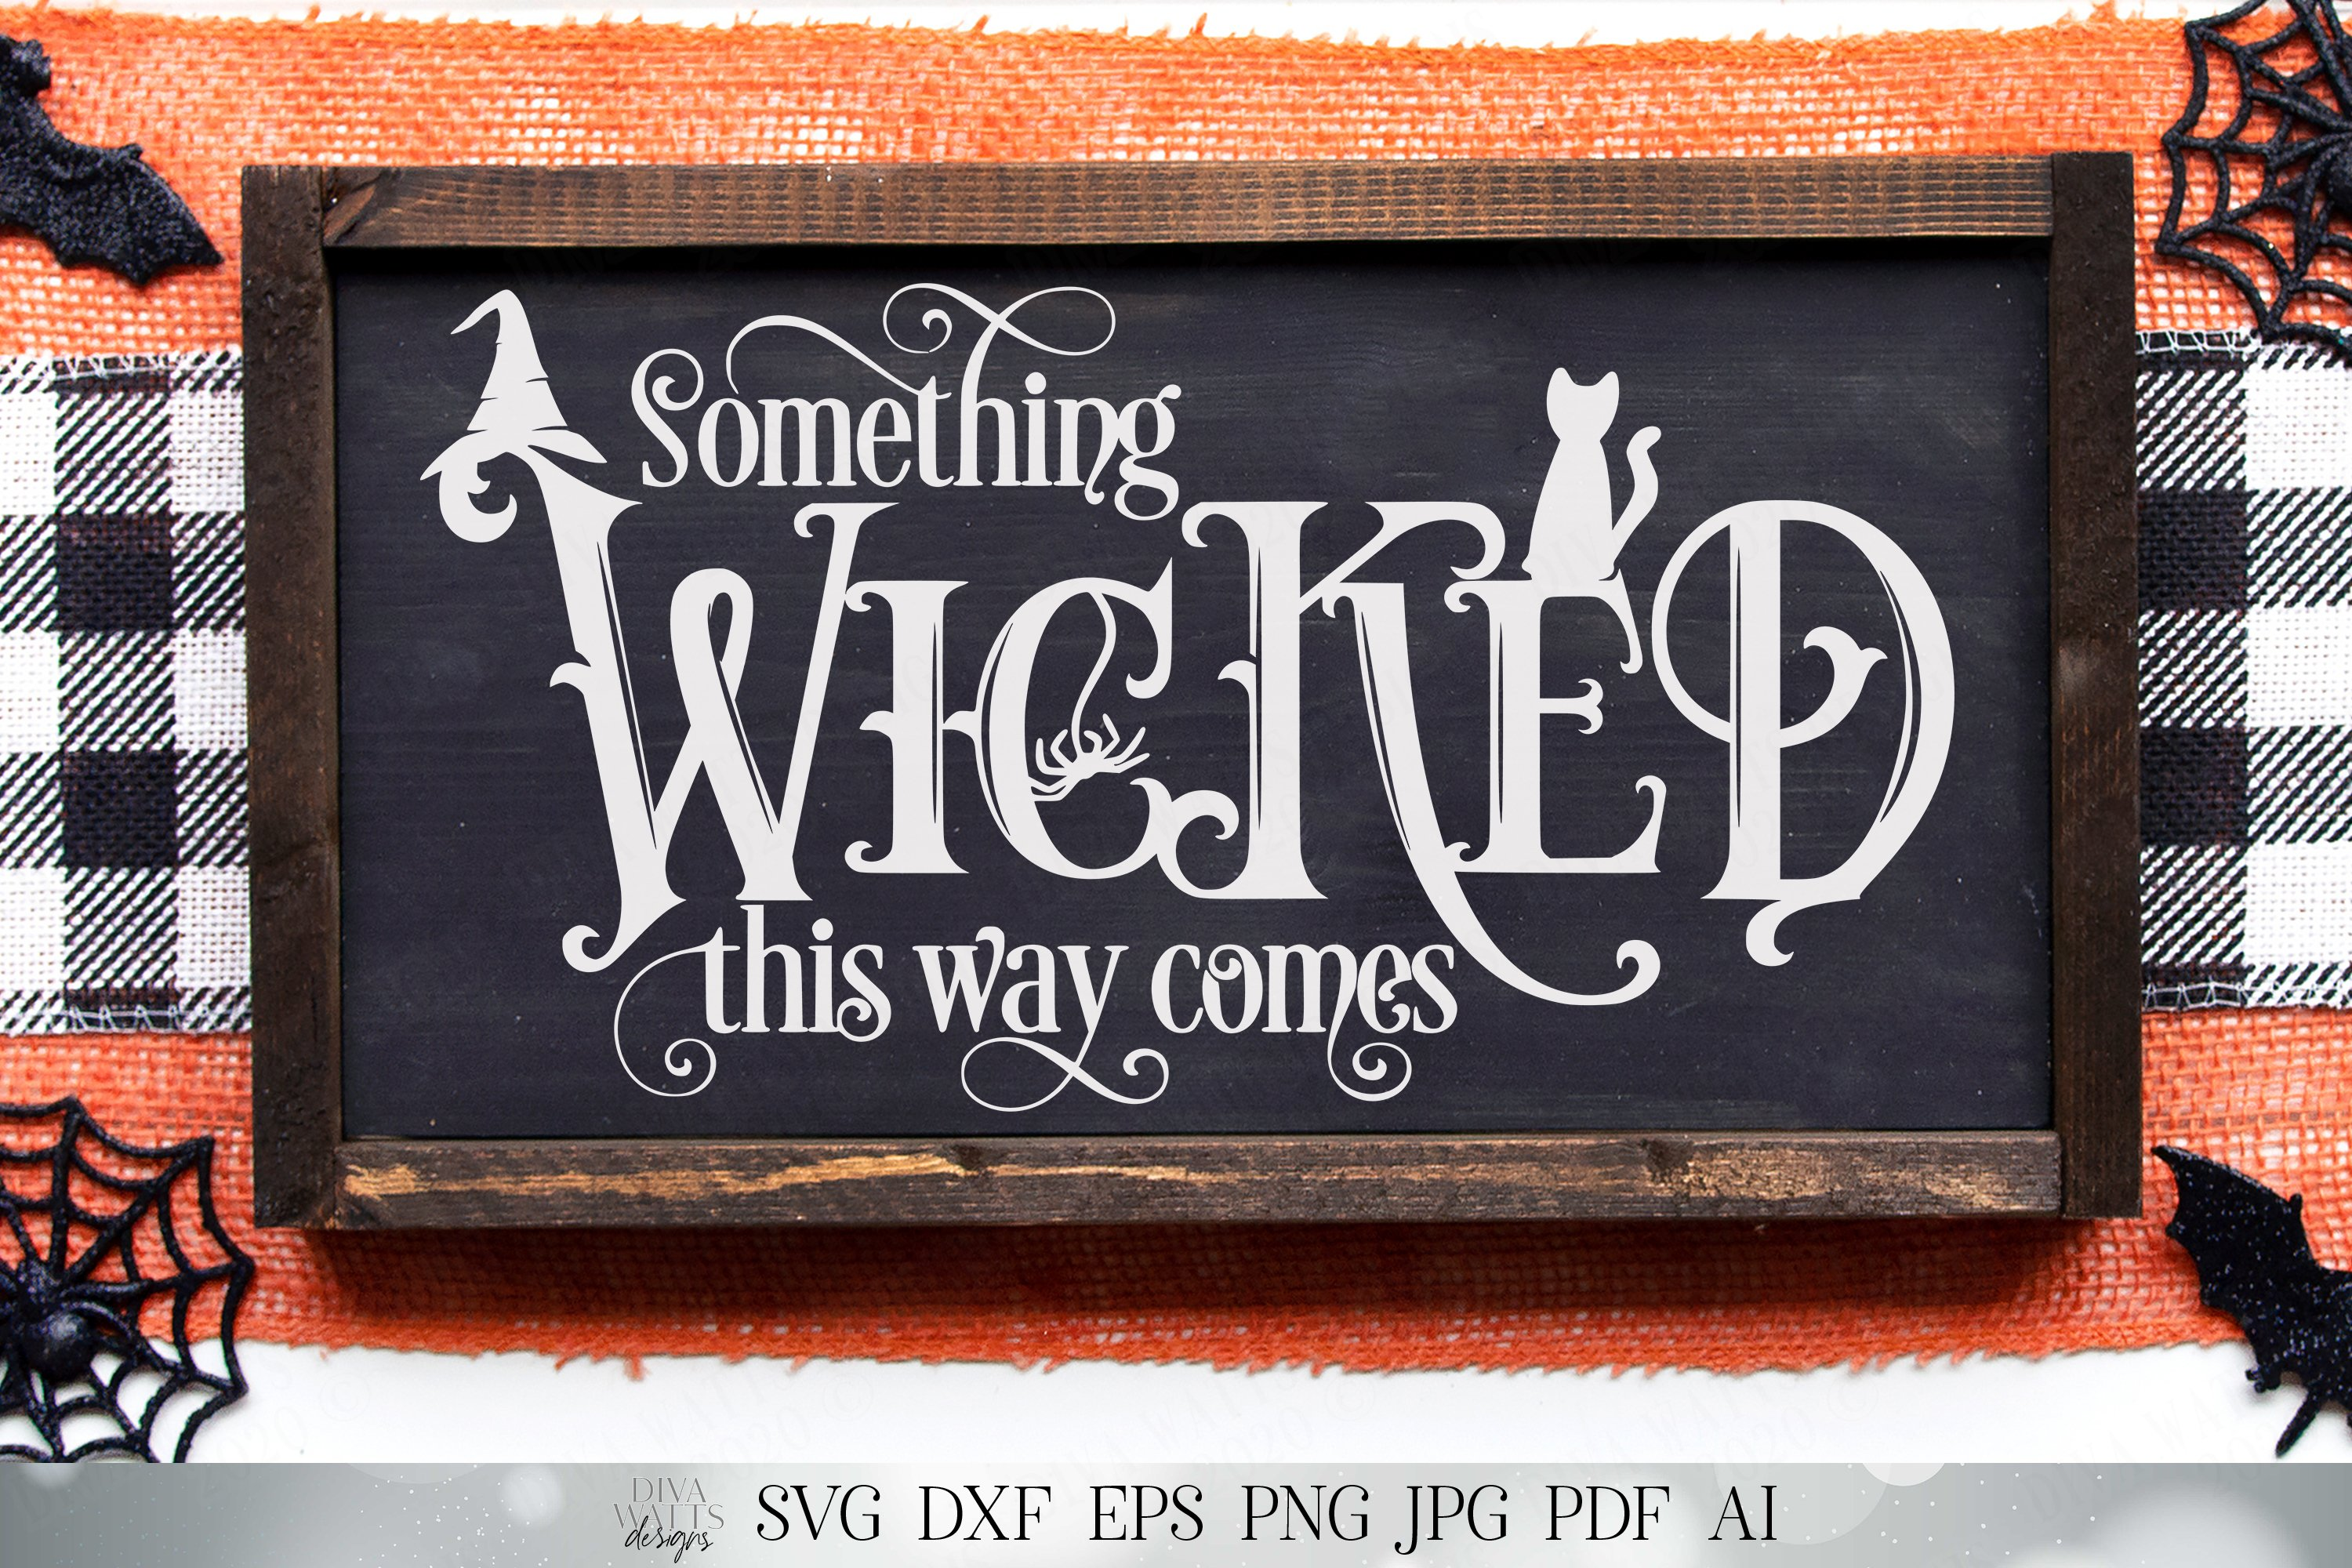 Something Wicked This Way Comes Halloween Svg Dxf Eps 905178 Cut Files Design Bundles